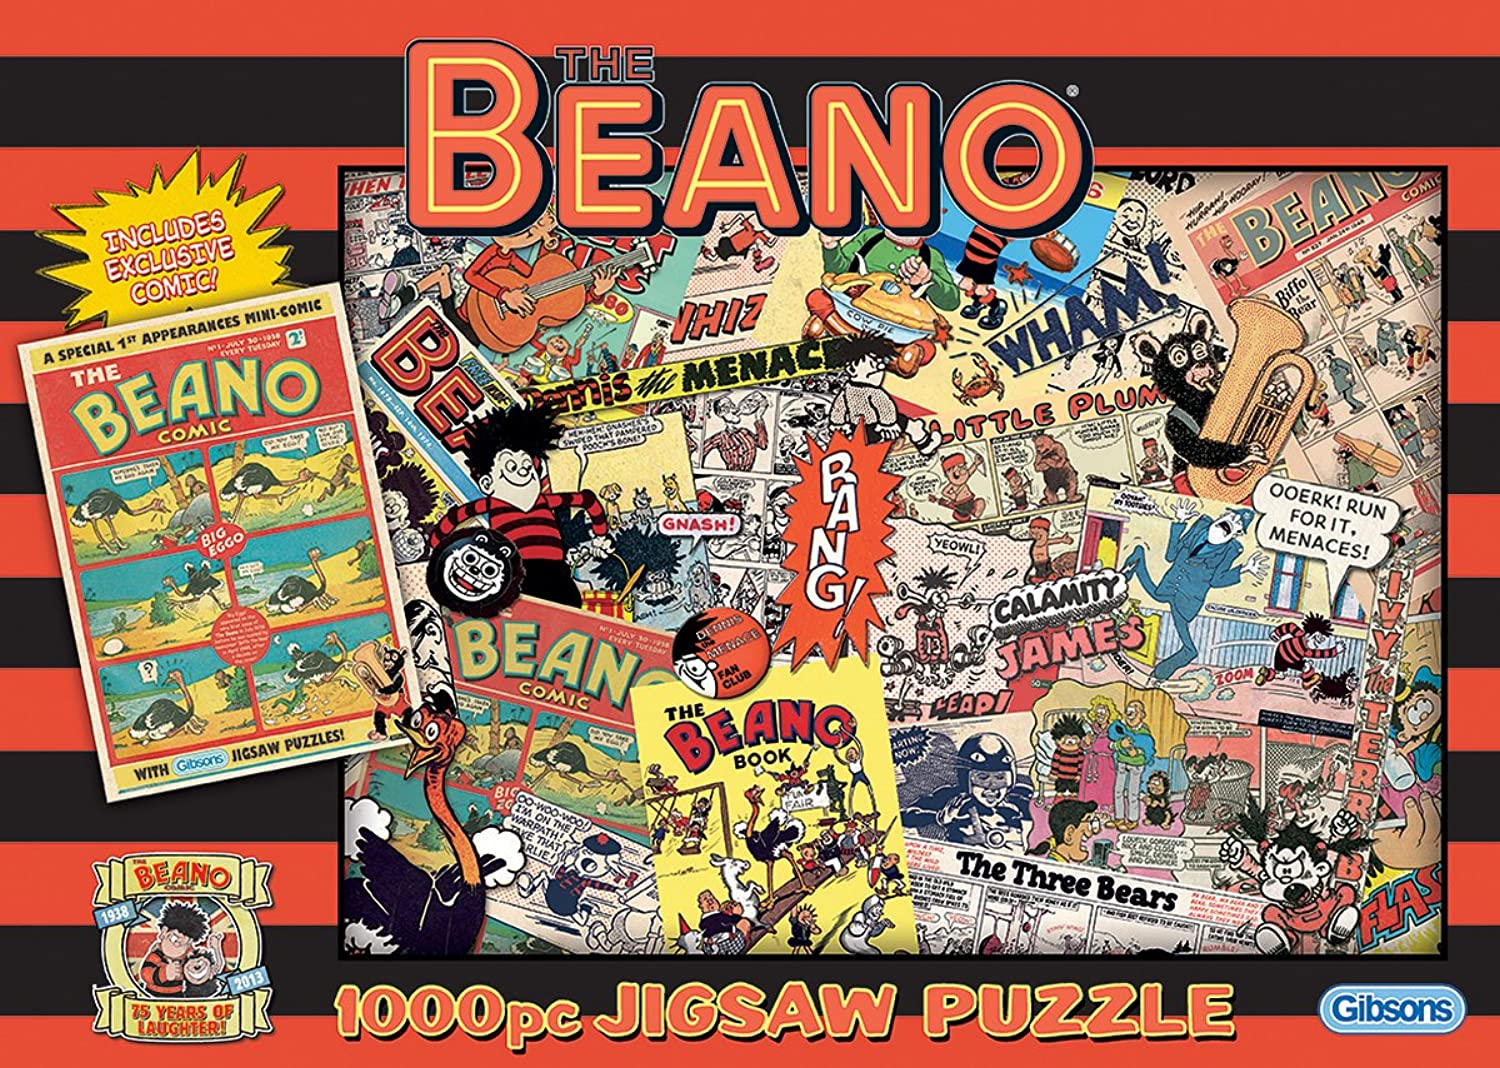 Gibsons The Beano 75 Years Jigsaw Puzzle (1000 Pieces)